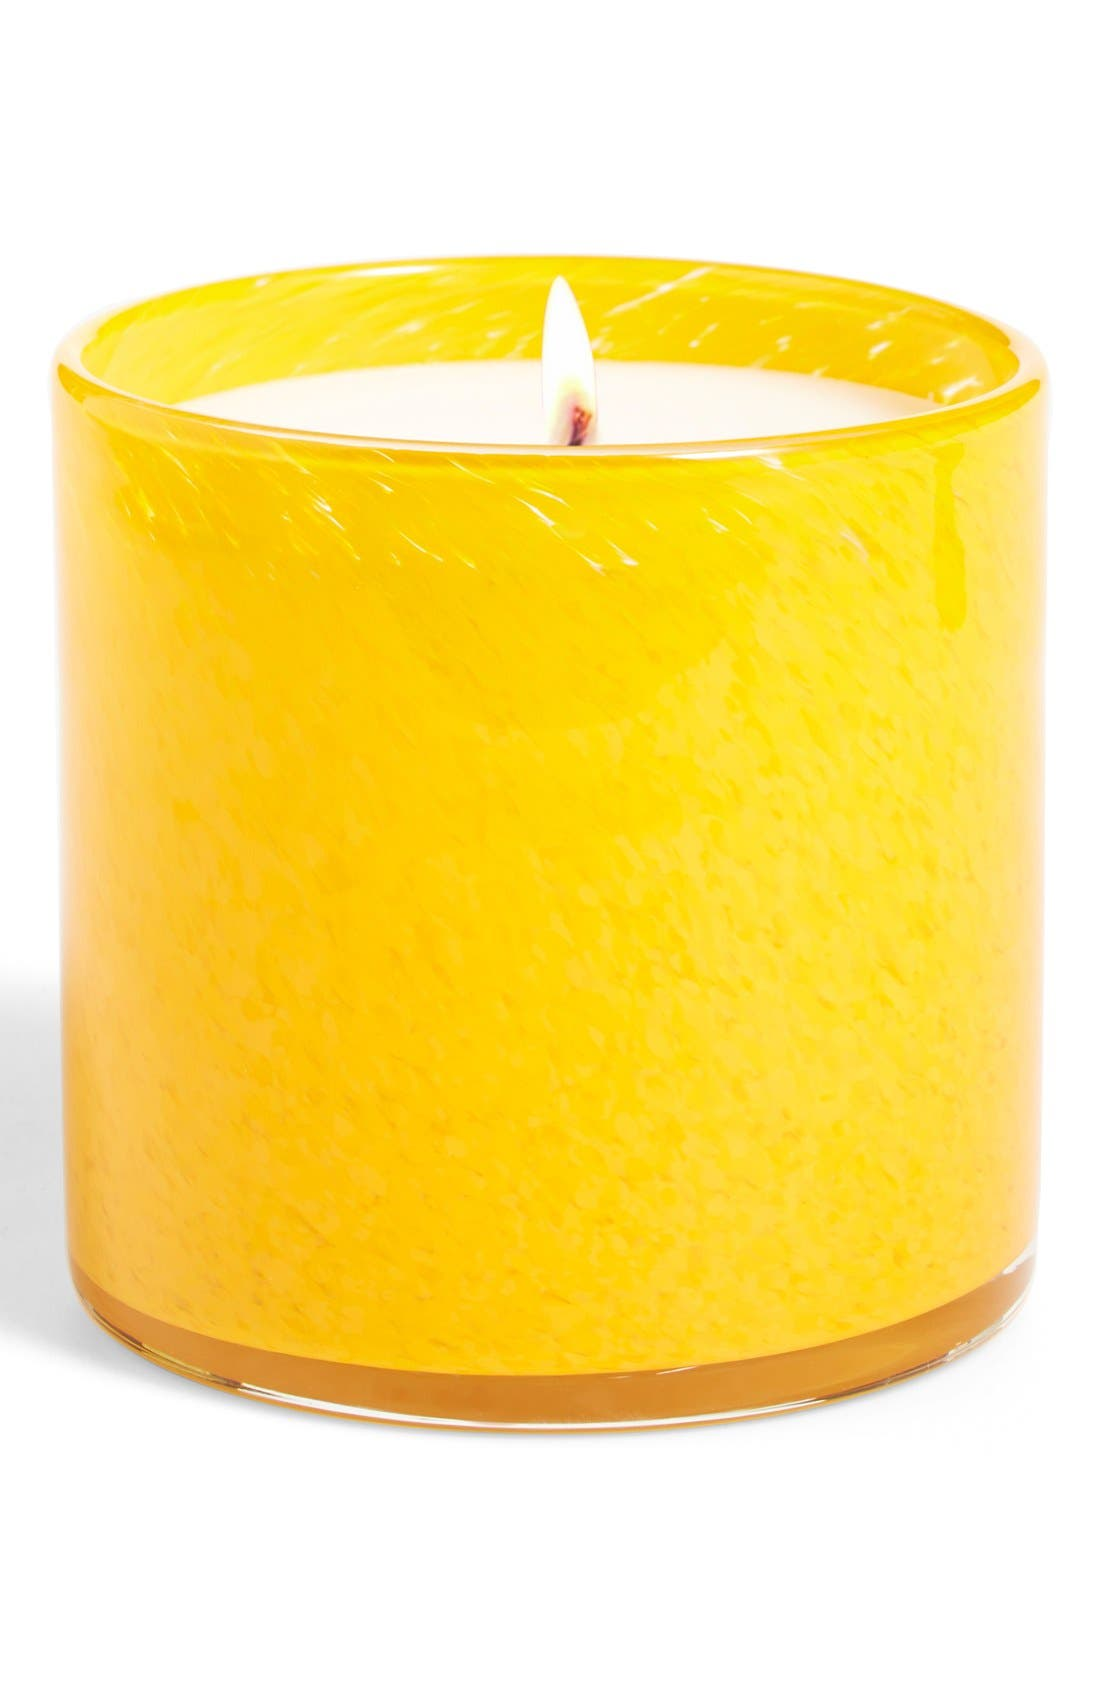 Main Image - Lafco 'Moonglow Apricot - Sunroom' Candle